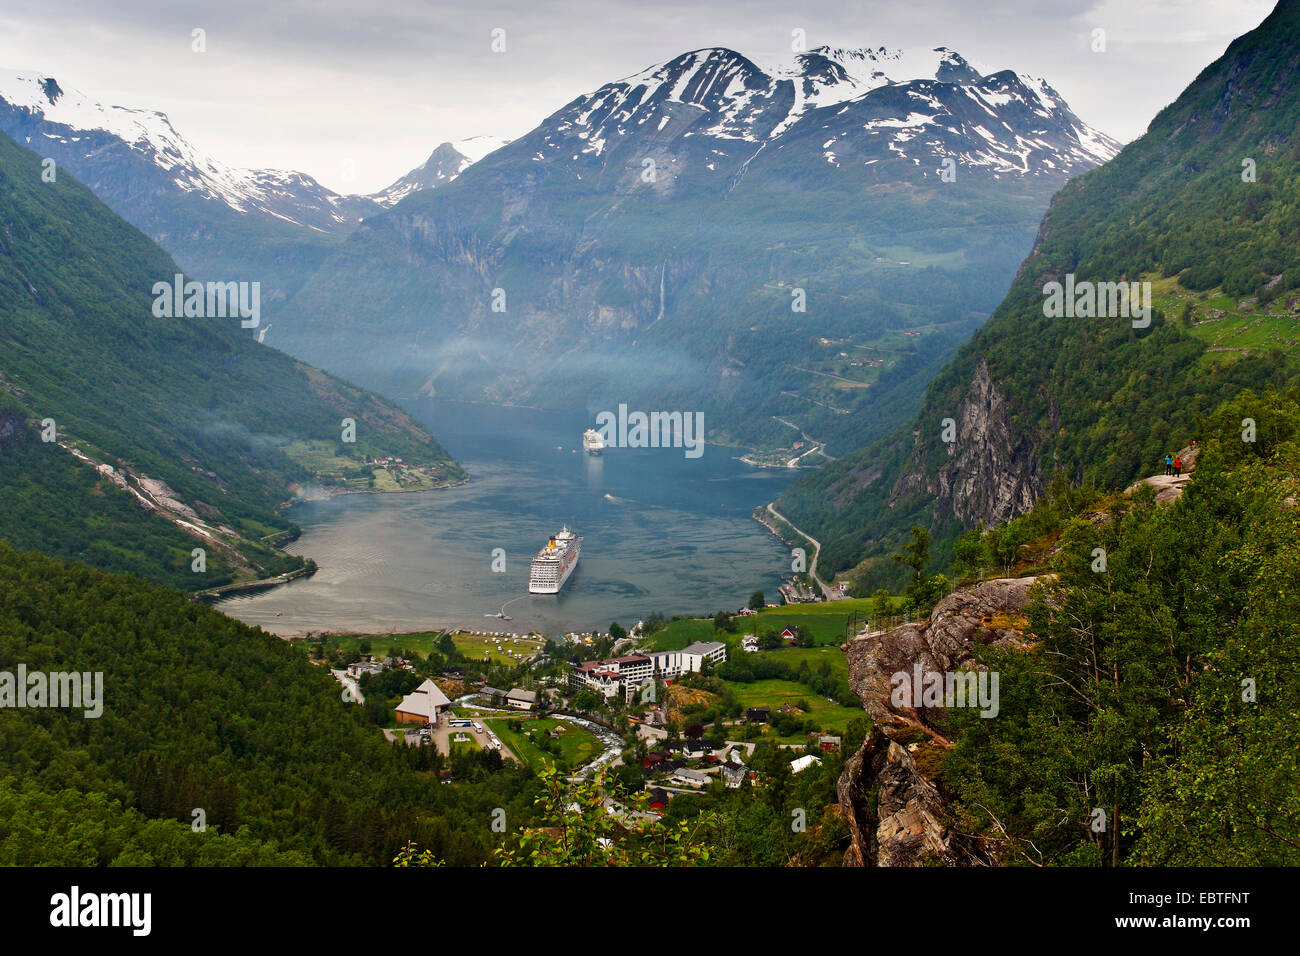 Geirangerfjord and cruise liners, Norway - Stock Image